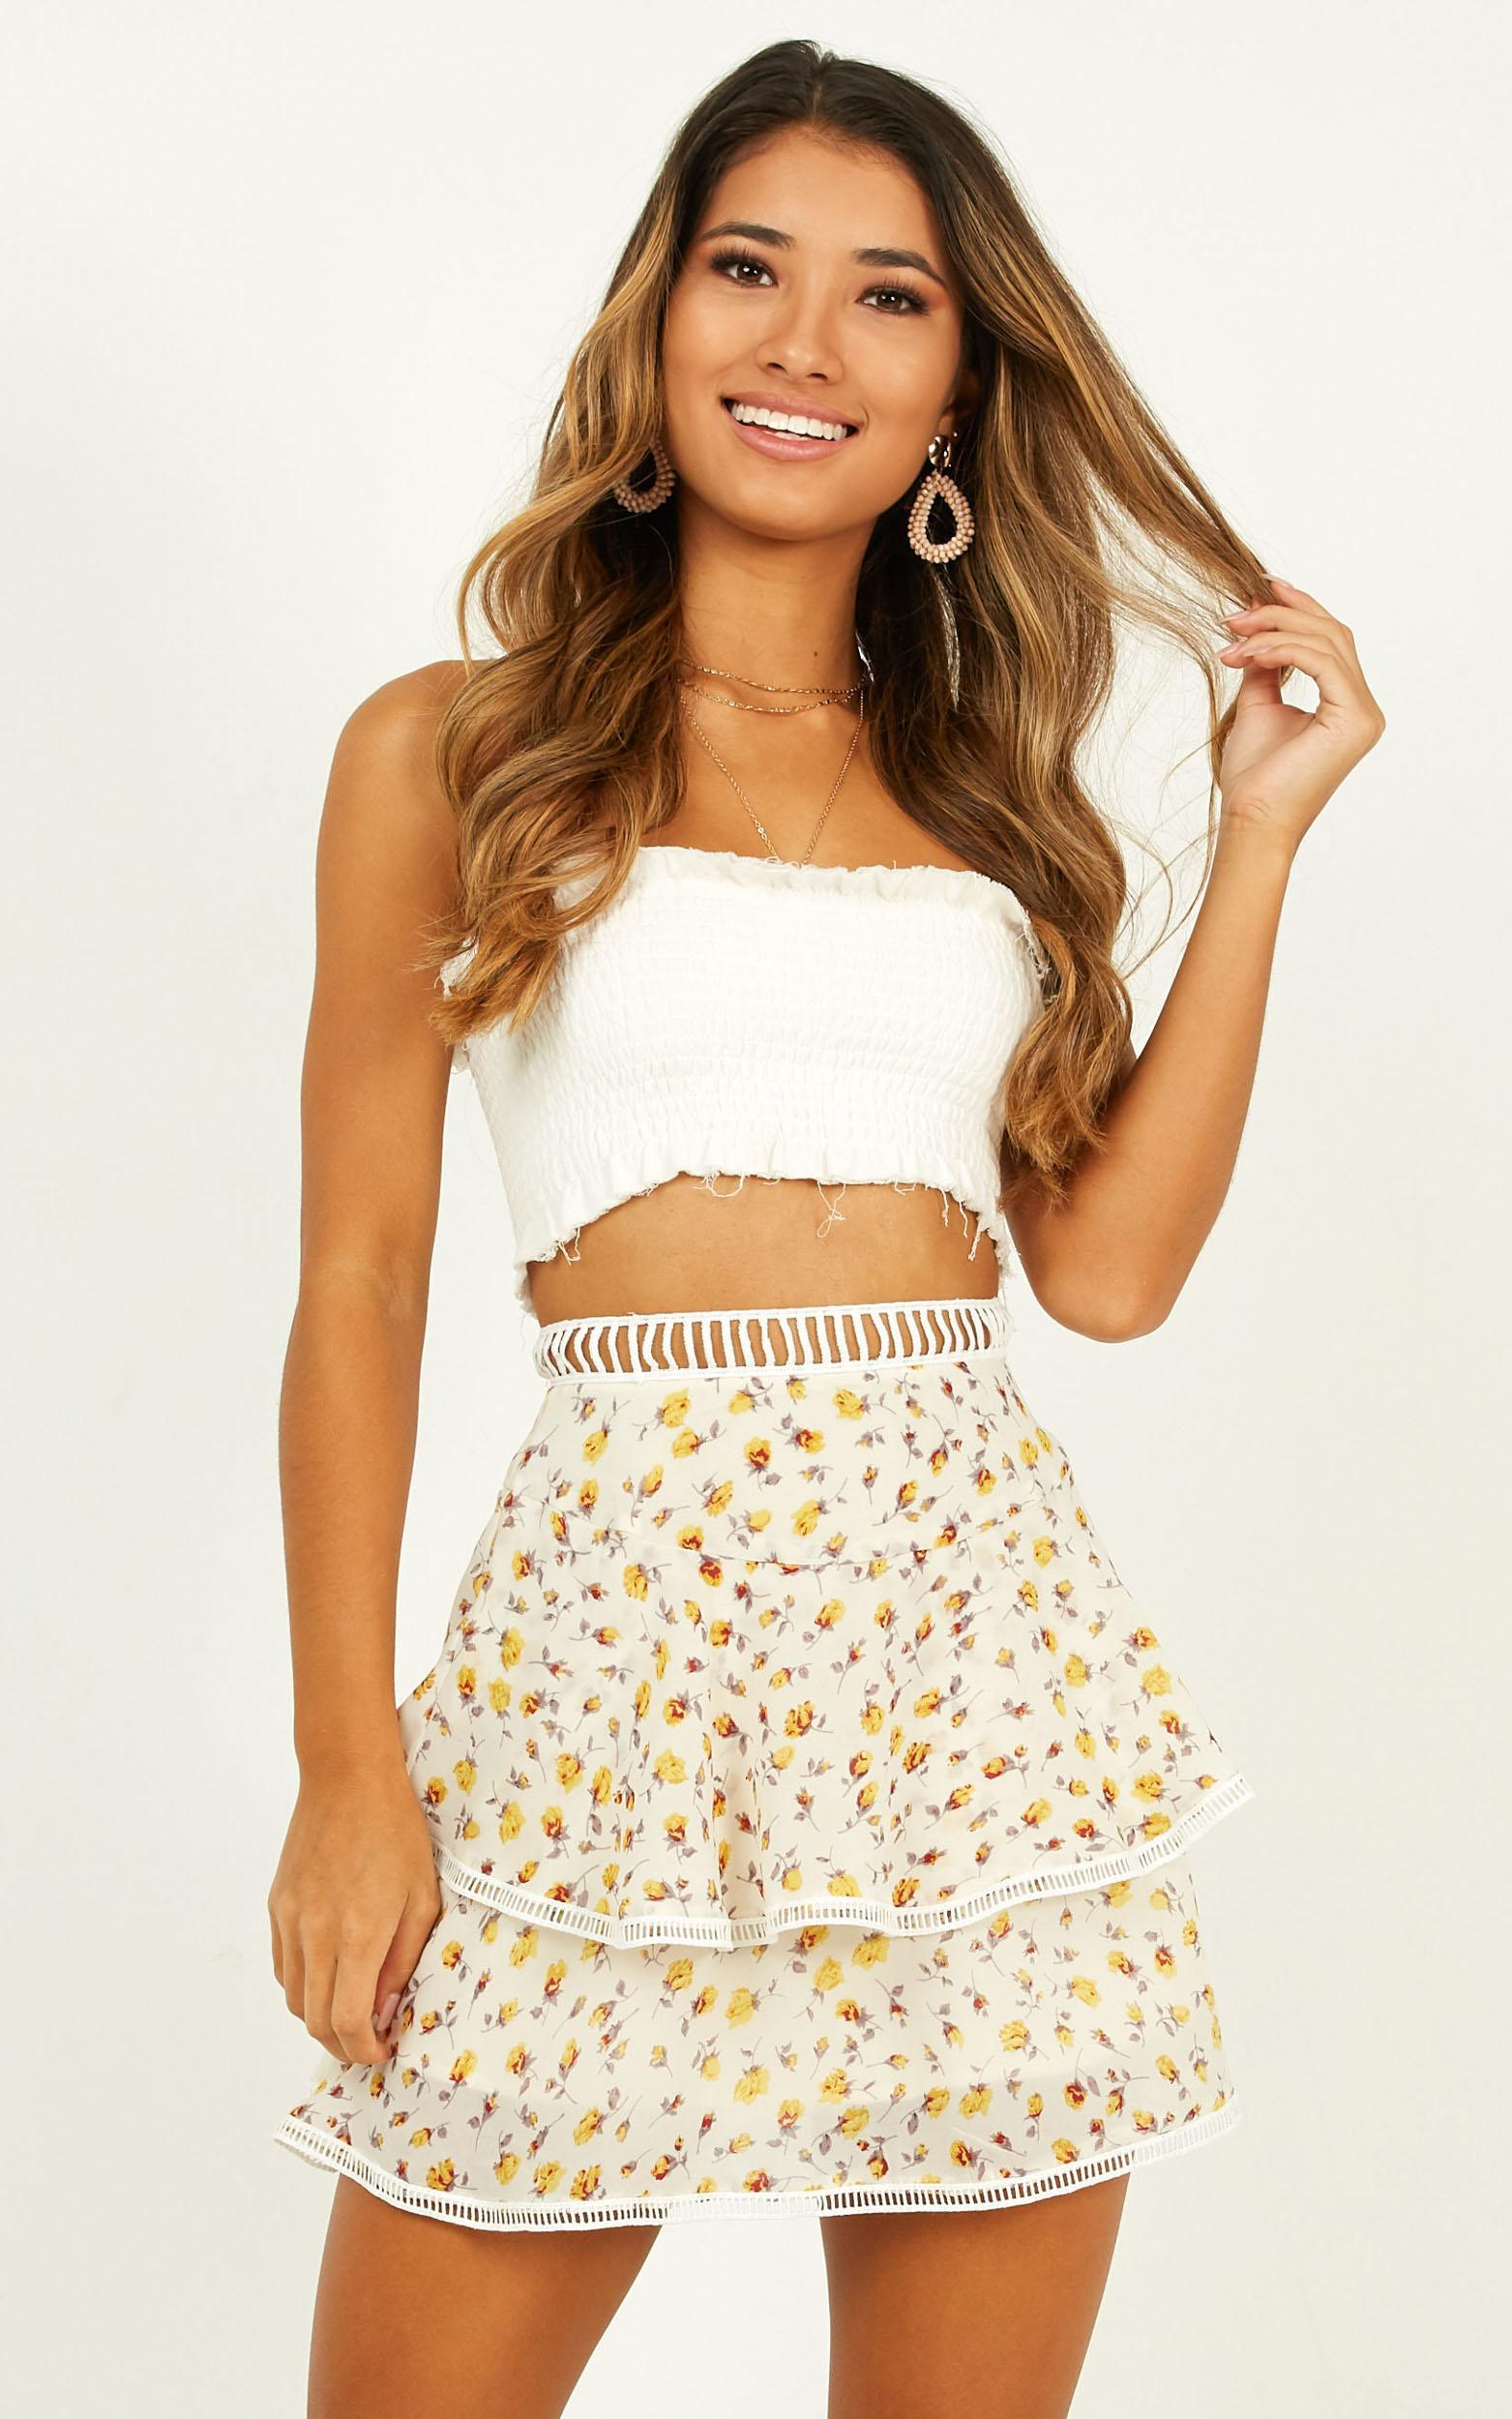 Put My Hands up Skirt In yellow floral - 14 (XL), Yellow, hi-res image number null